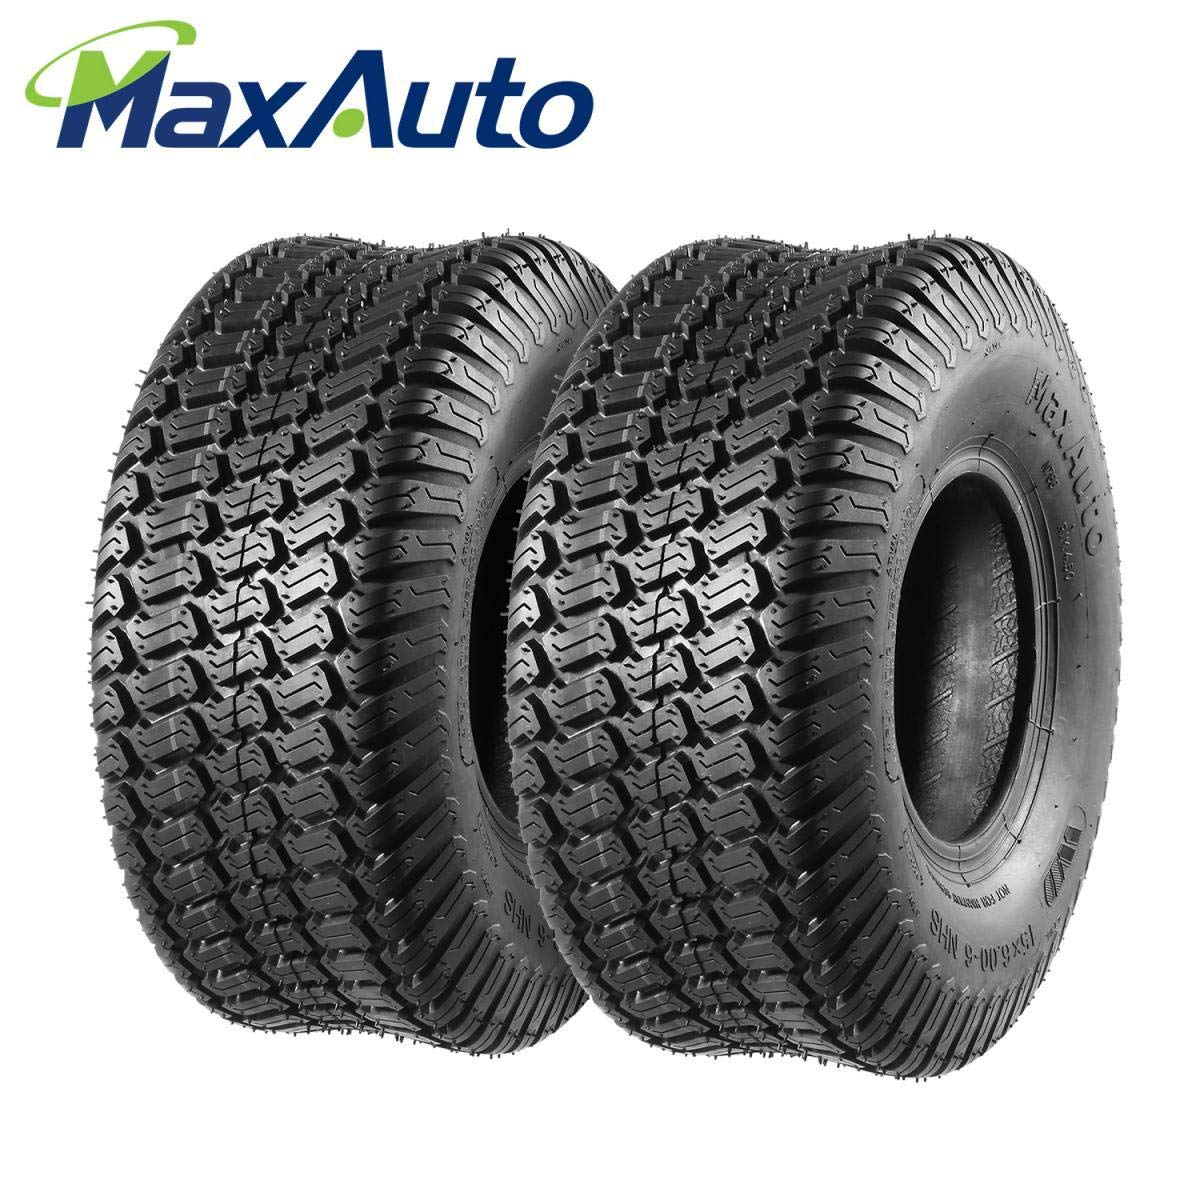 Set of 2 15x6.00-6 15x6x6 15-6-6 Turf Tires for John Deere Tractor Riding Mover Lawn /& Garden Tire 4 Ply